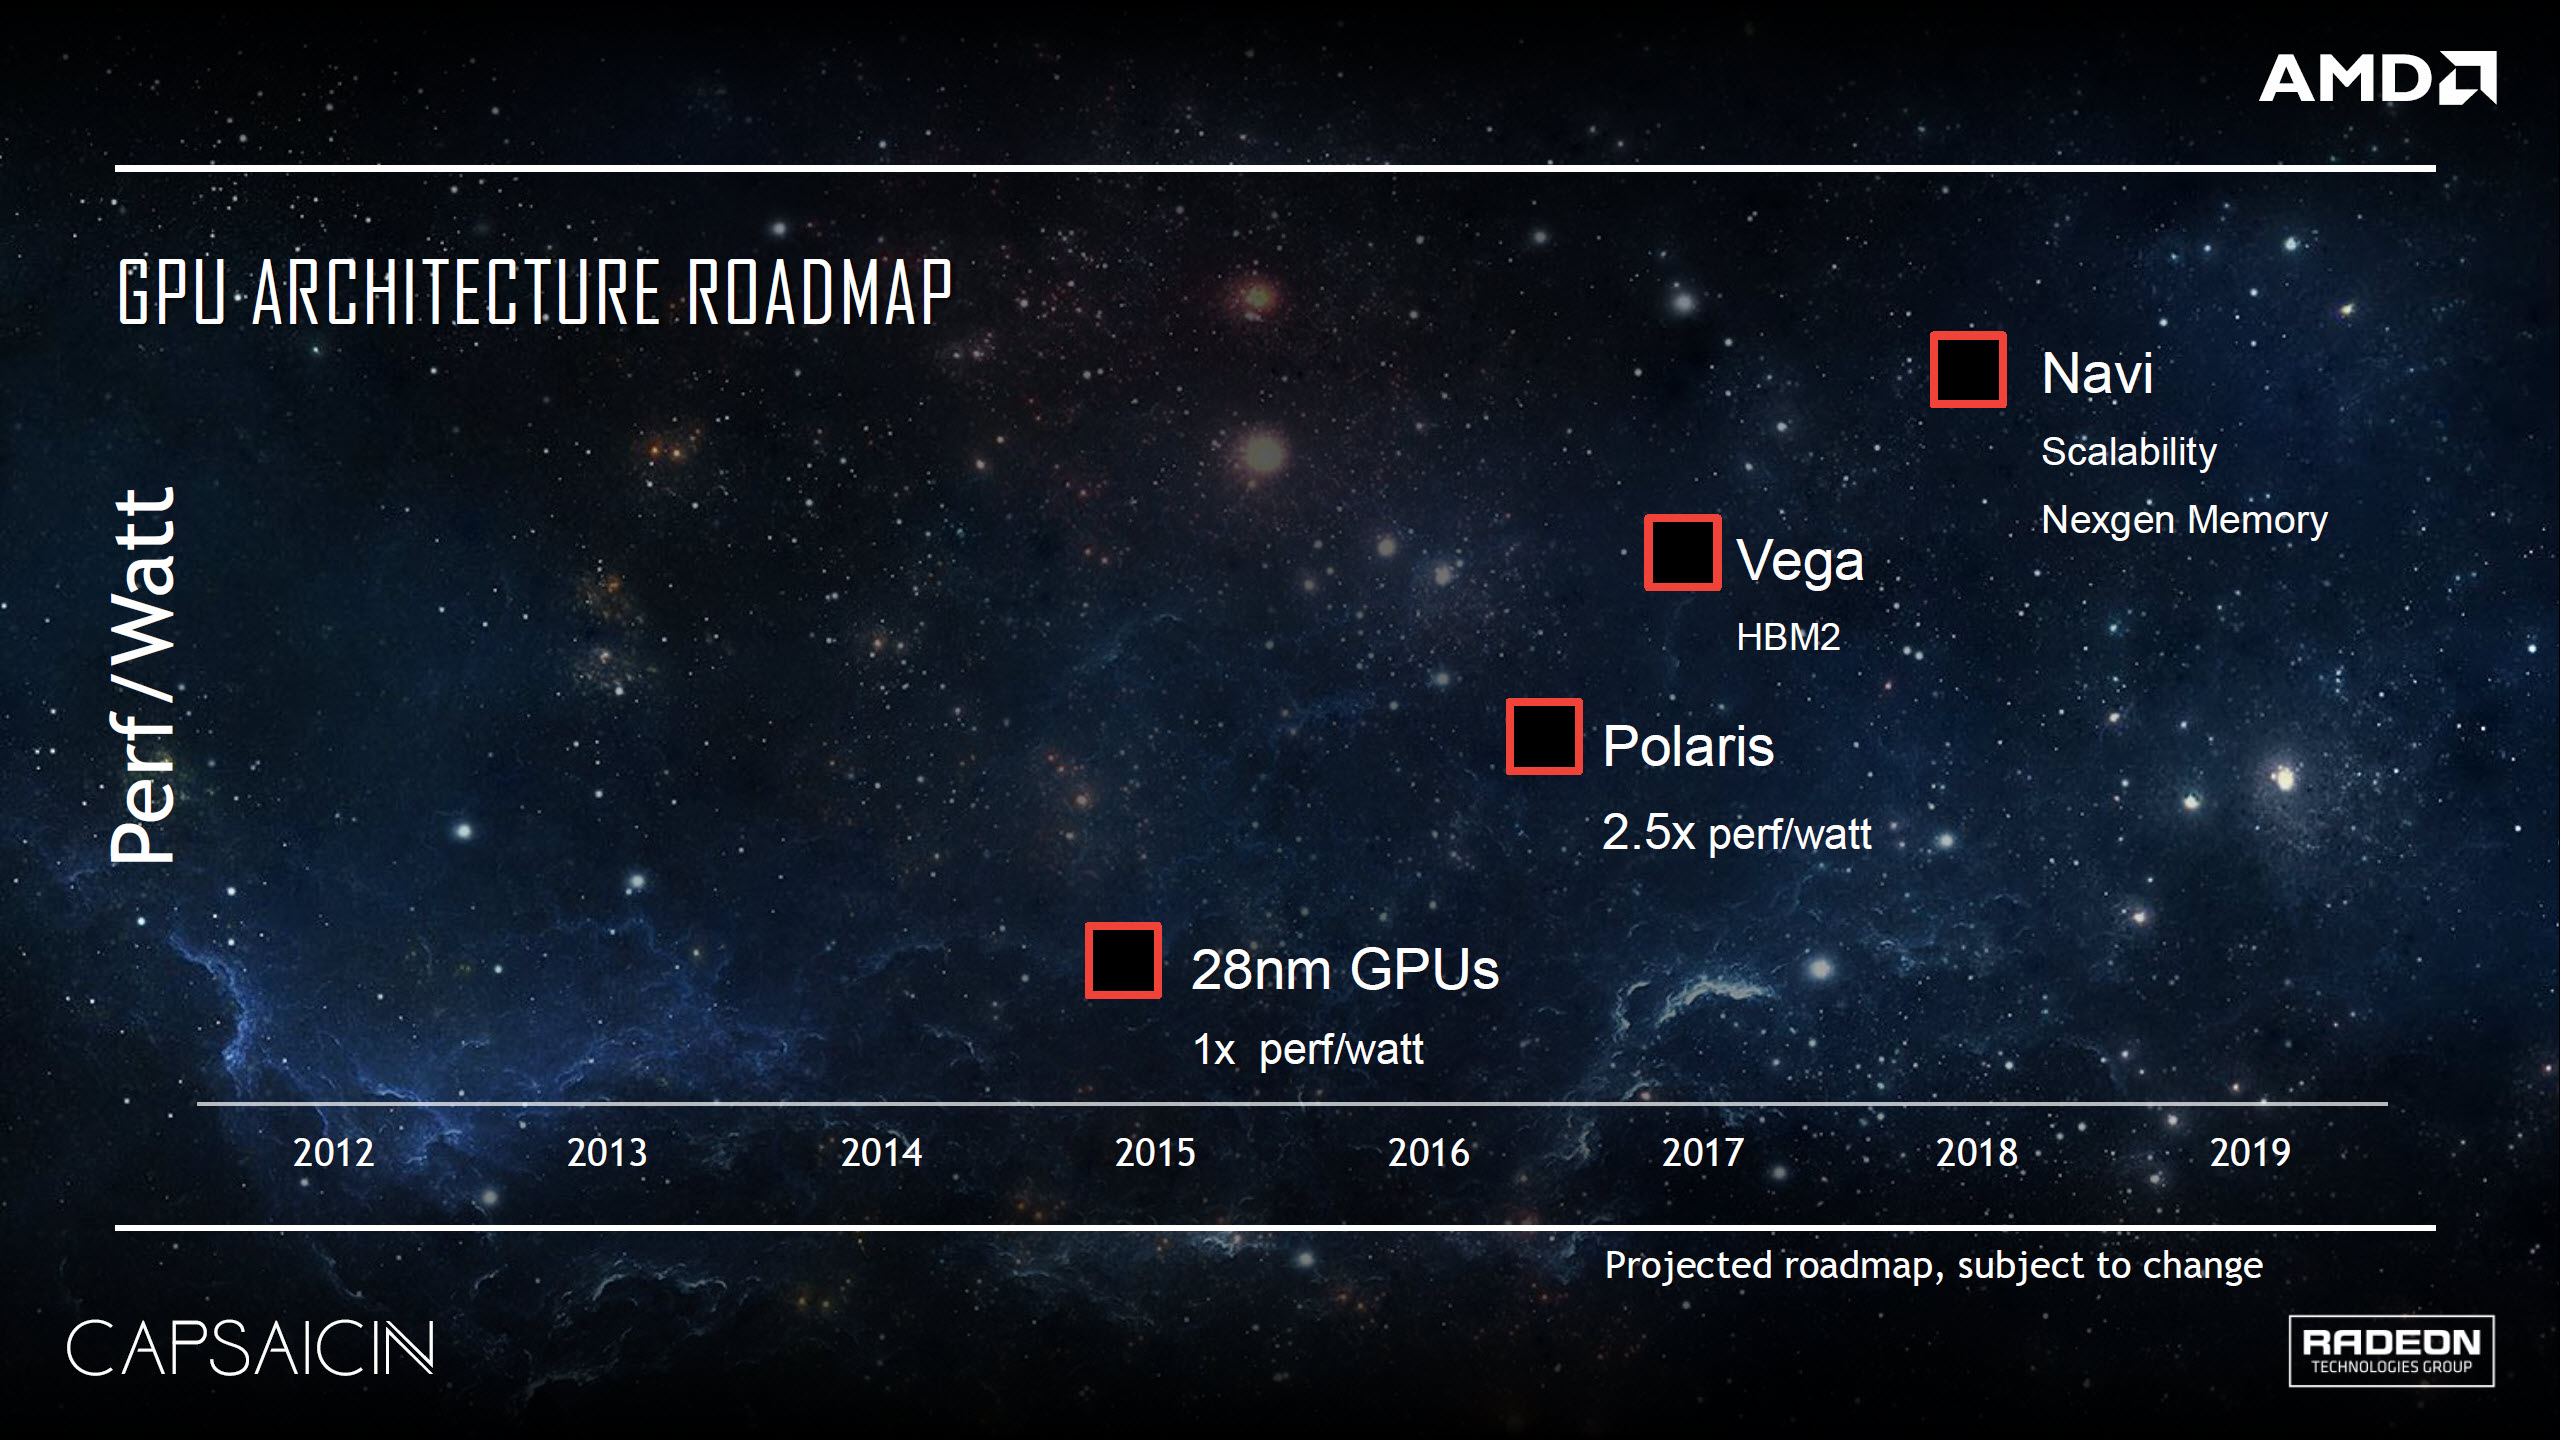 AMD GPU Architecture Roadmap Vega 10